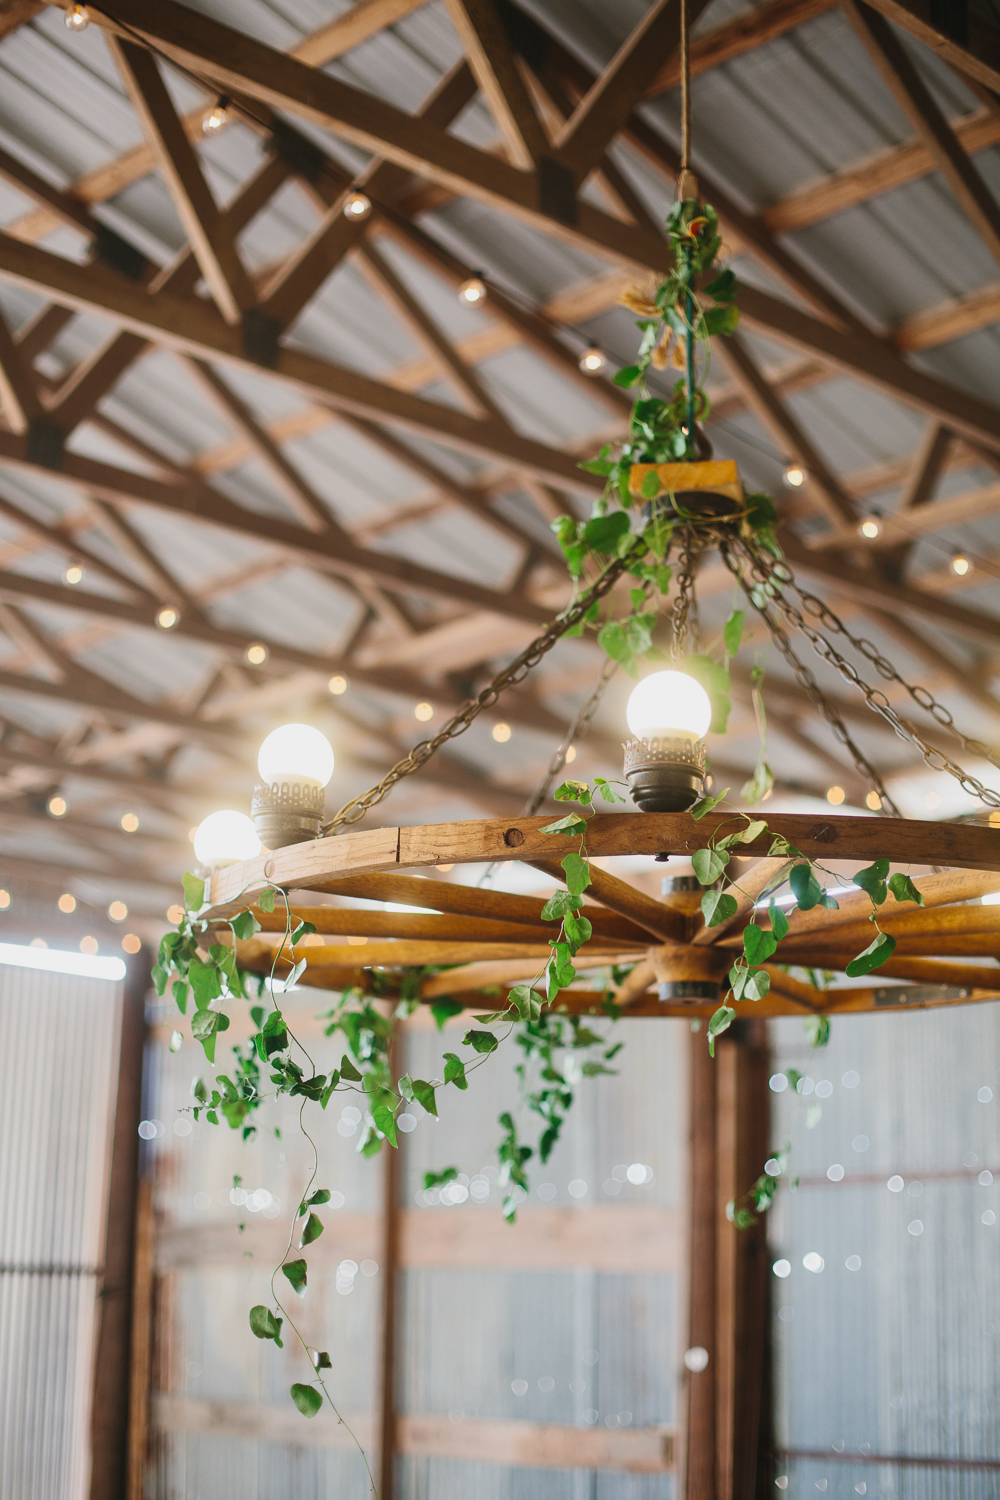 The iconic wagon wheel chandelier at Summerfield.